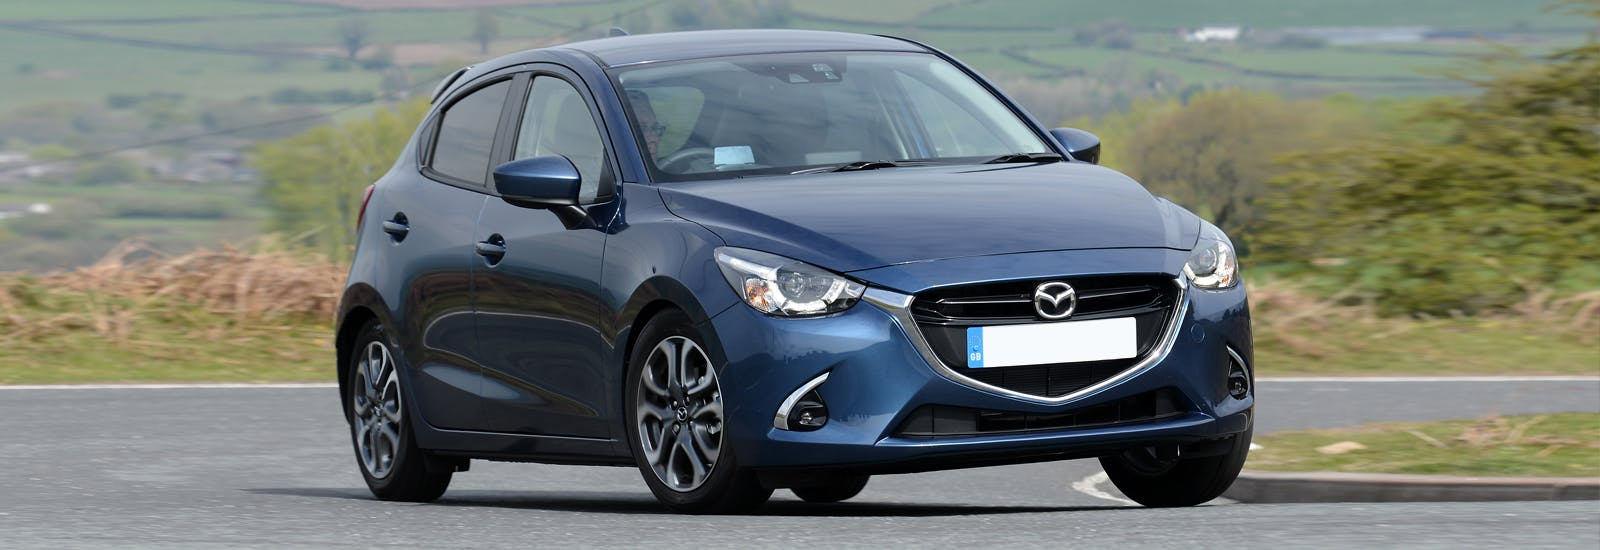 2017 mazda 2 gt and gt sport price specs release date. Black Bedroom Furniture Sets. Home Design Ideas